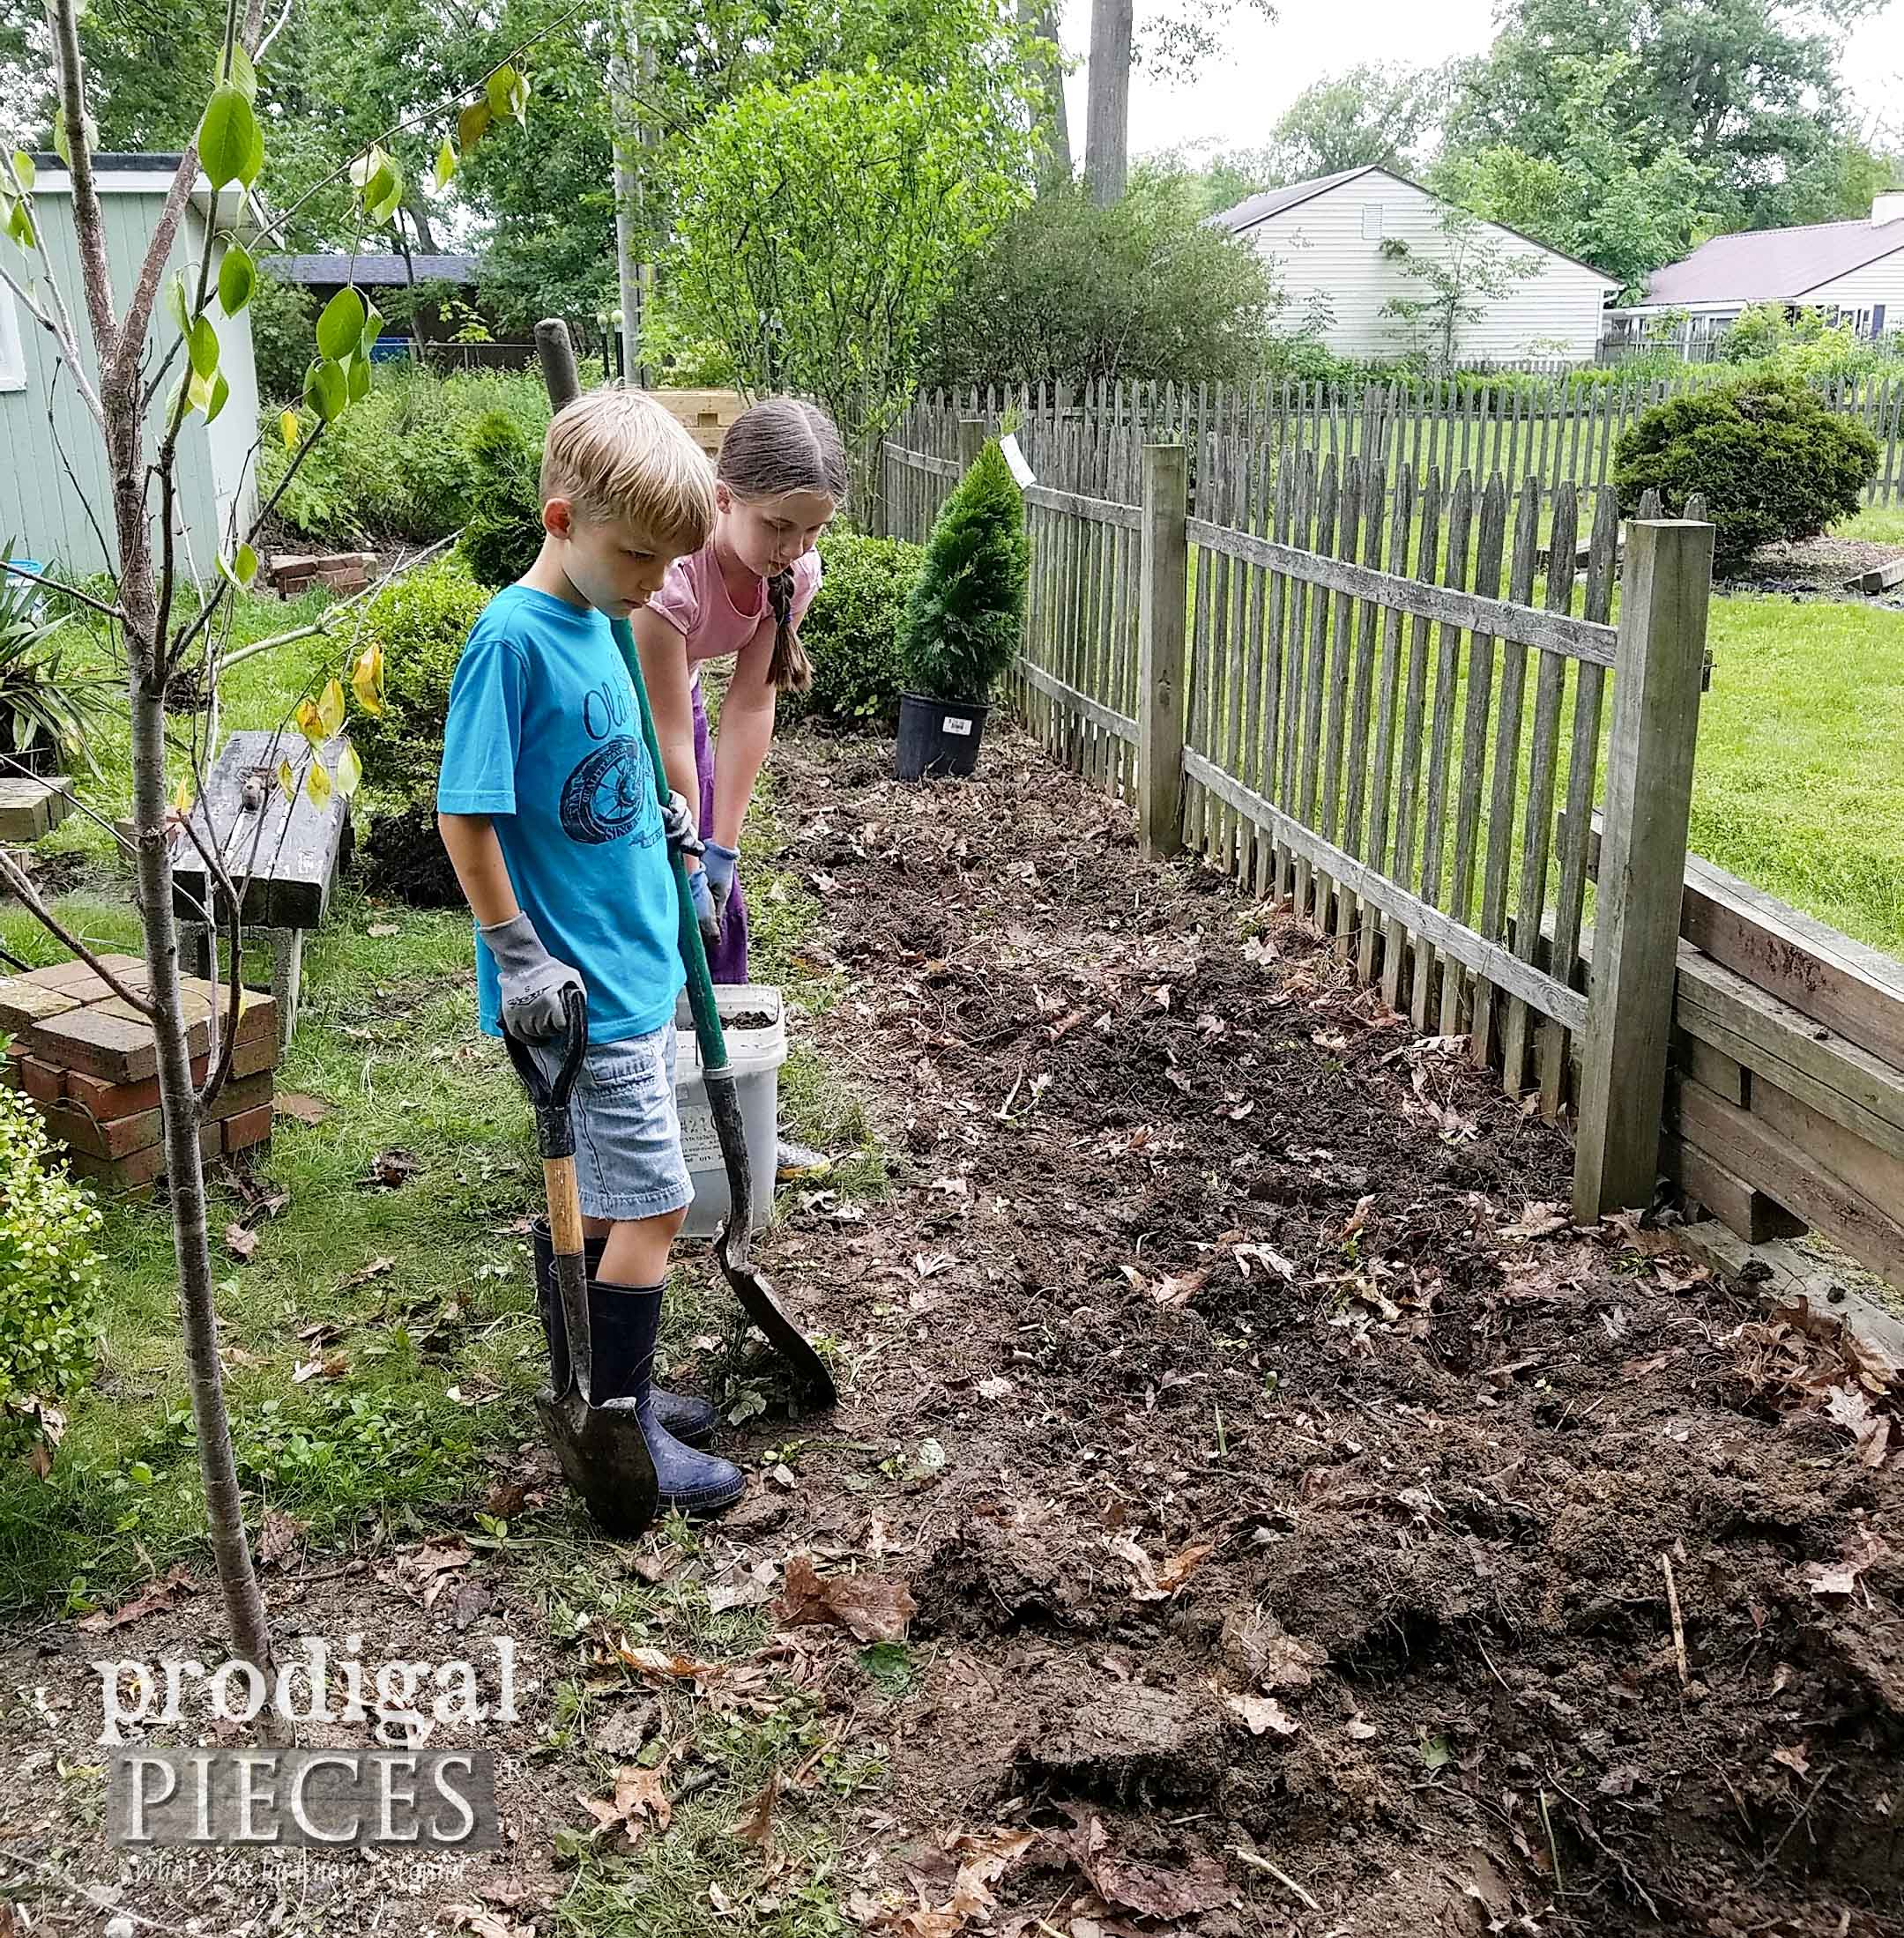 Kids Helping to Landscape | prodigalpieces.com